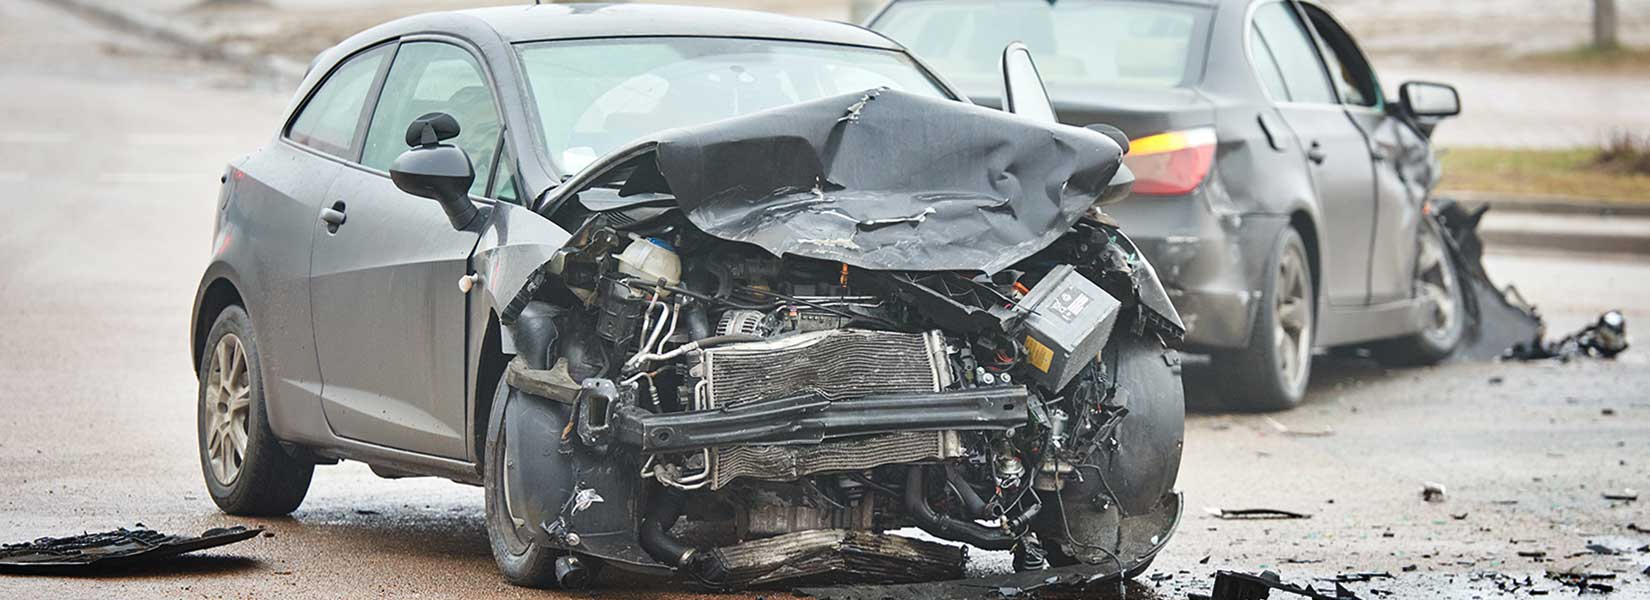 My Car Accident Claim Was Denied Fayetteville Car Accident Lawyer